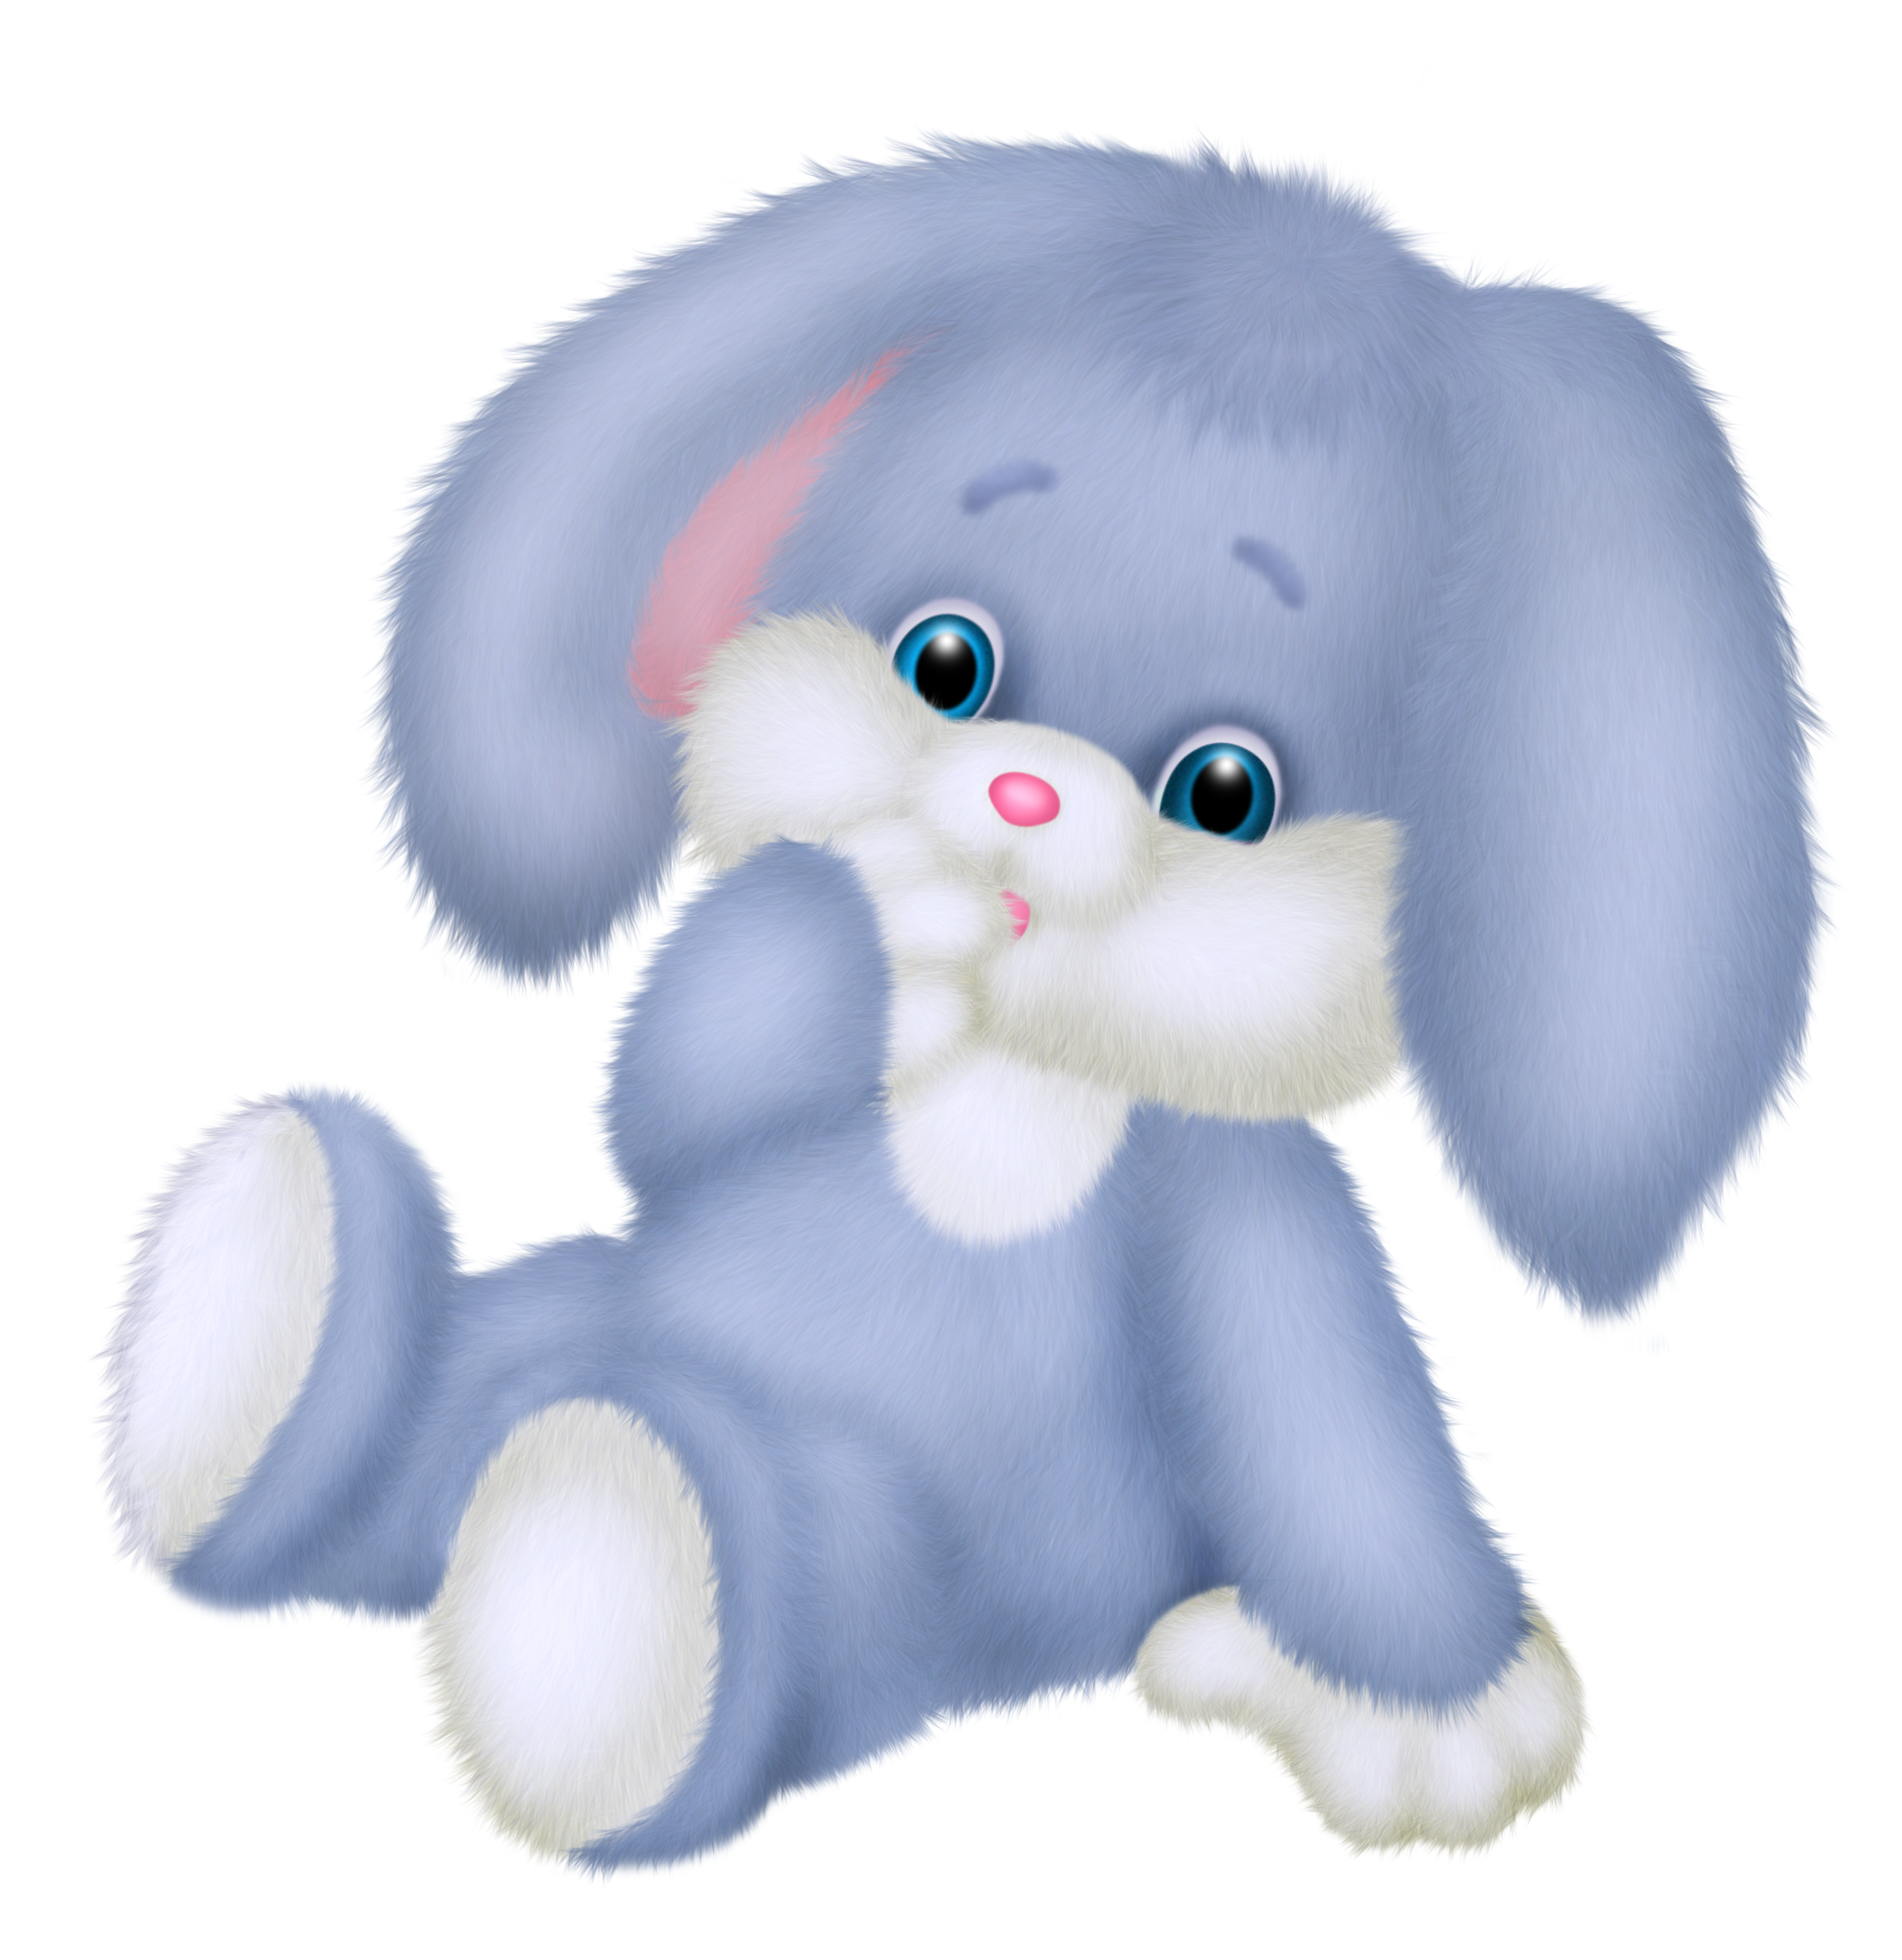 Stuffed clipart transparent background. Cute blue bunny png